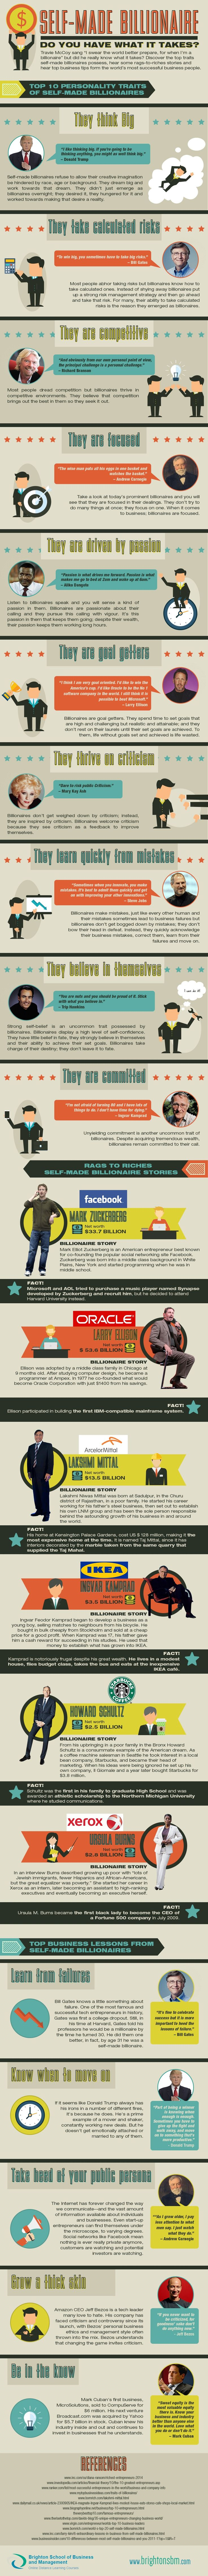 Self-made-Billionaire-Infographic